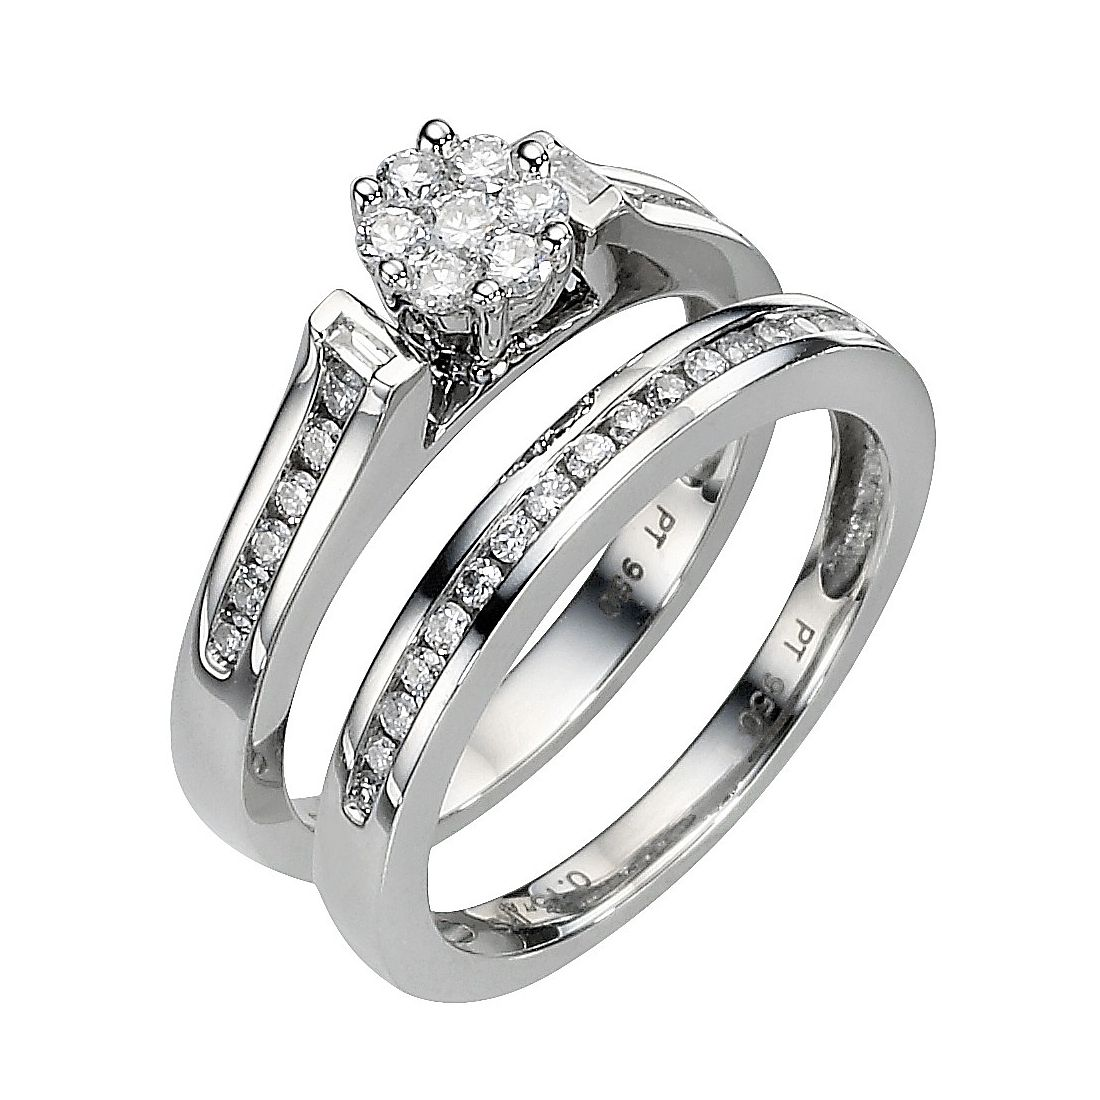 Perfect Fit Platinum 1/2ct Diamond Flower Shaped Bridal Set - Product number 8453047